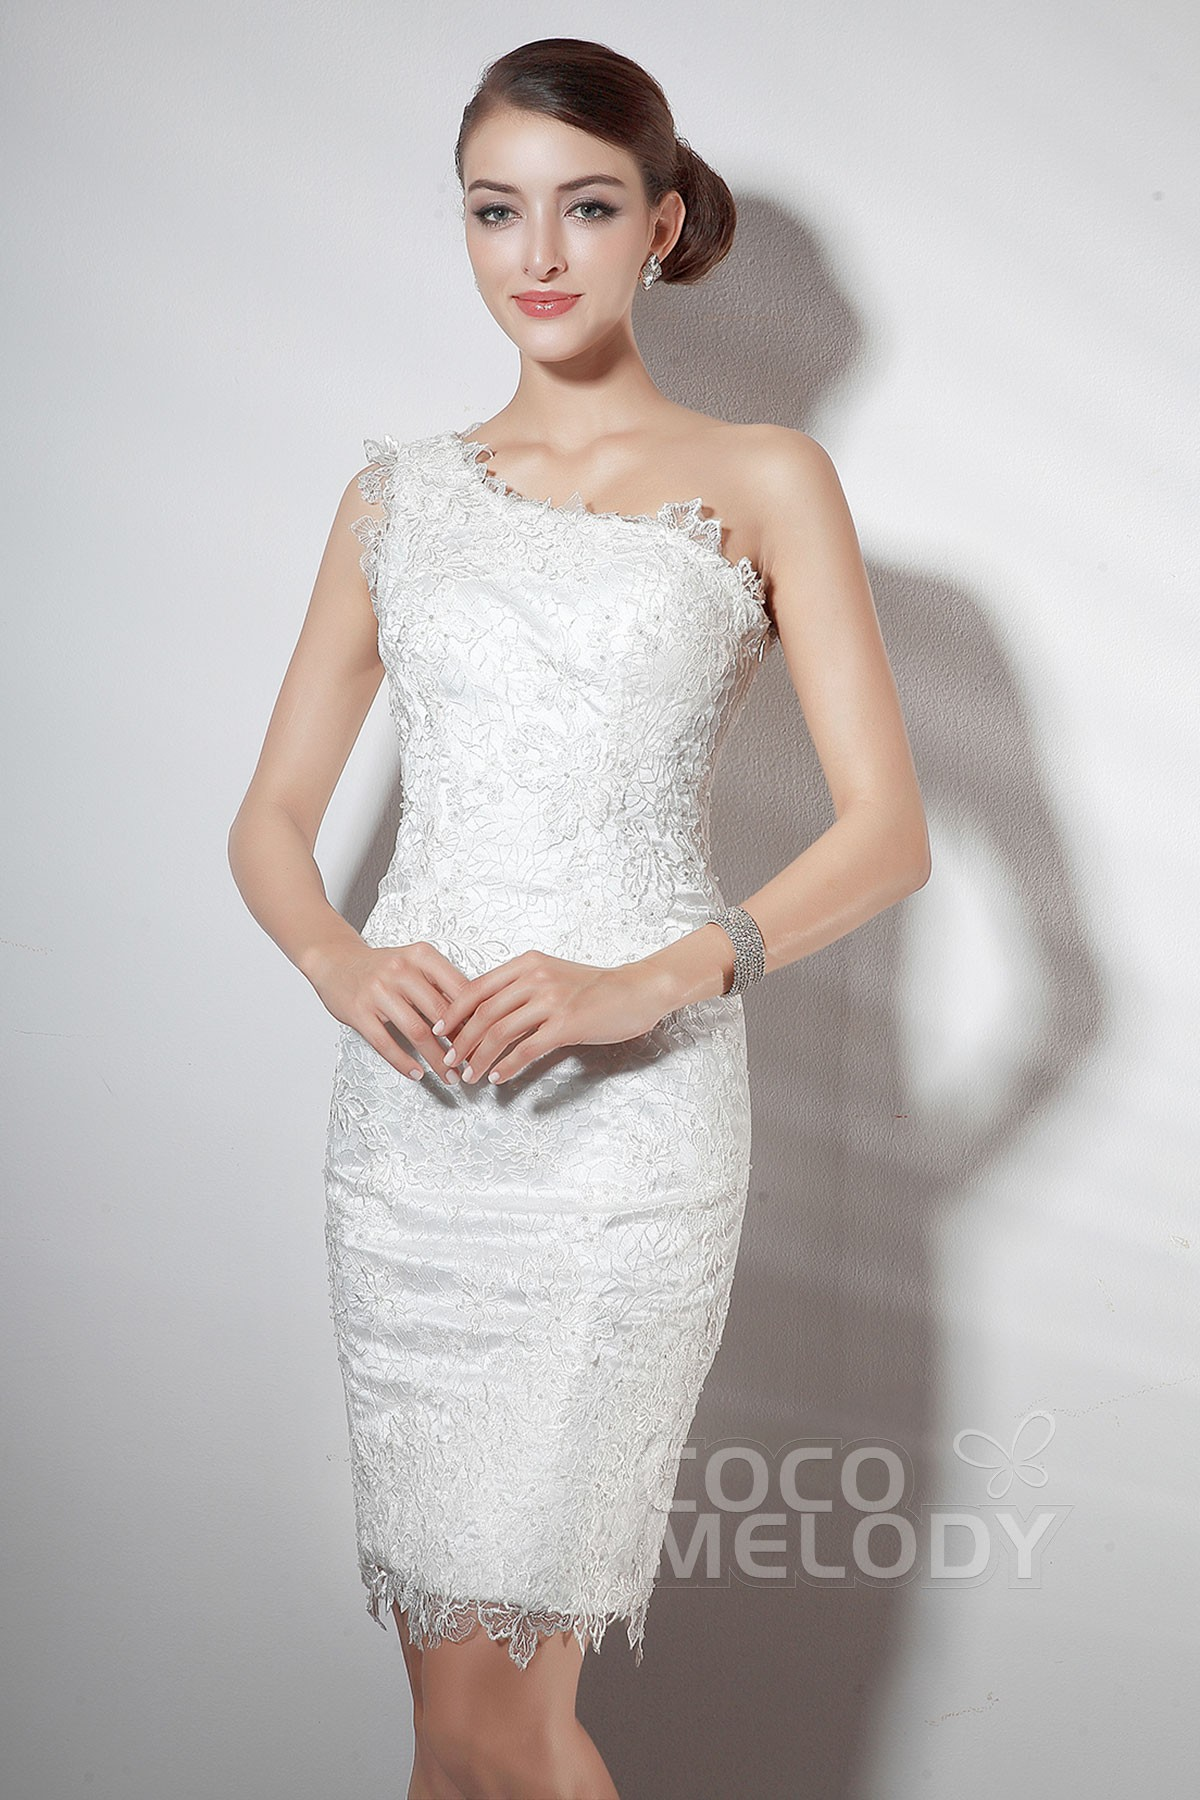 Cocomelody: Knielanges Partykleid mit Spitze COZM14019